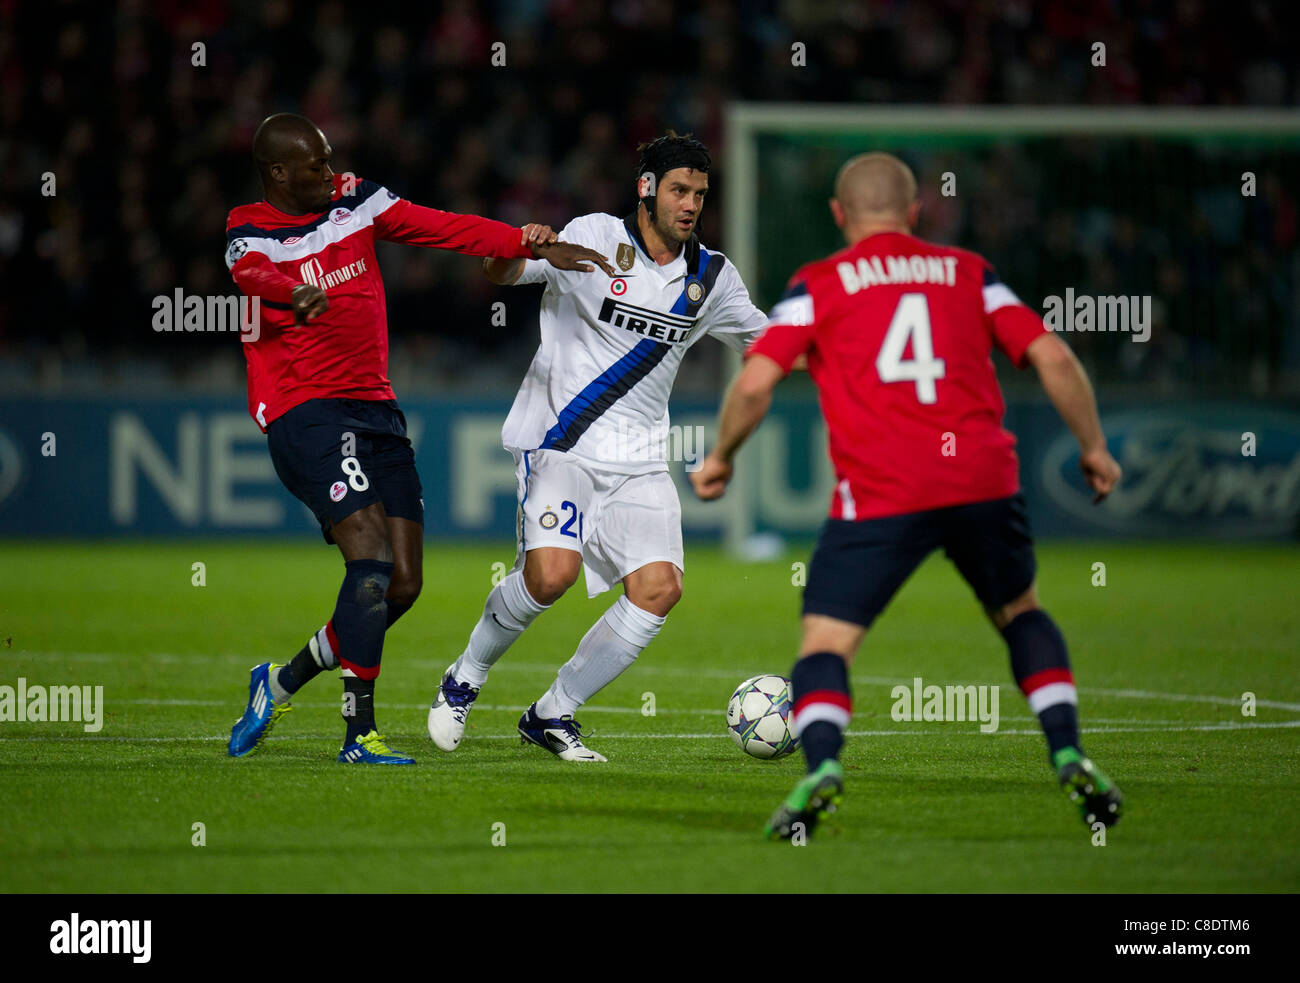 Christian chivu stock photos christian chivu stock images alamy moussa sow of lille olympique sporting club and christian chivu of inter milan stock image thecheapjerseys Image collections